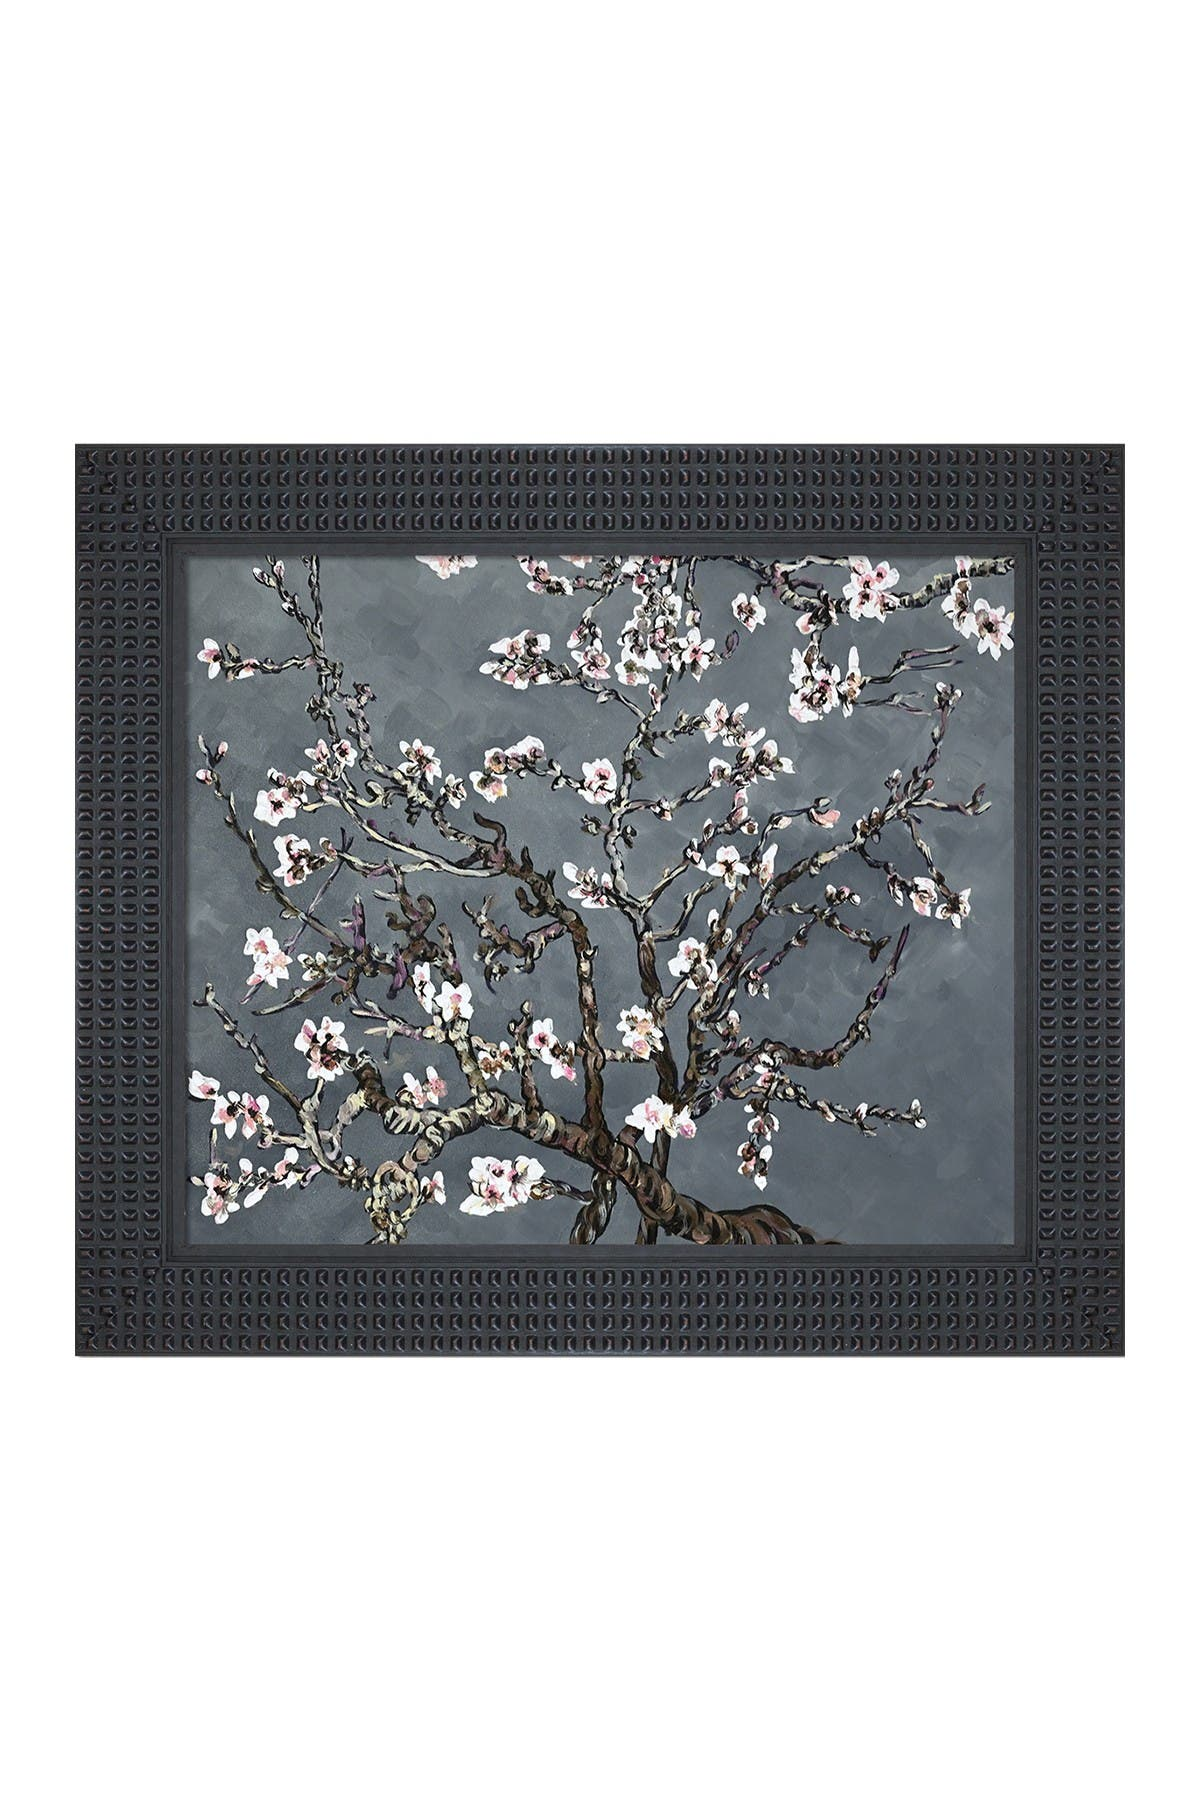 Image of Overstock Art Branches of an Almond Tree in Blossom, Pearl Grey - Framed Oil Reproduction of an Original Painting by La Pastiche Originals